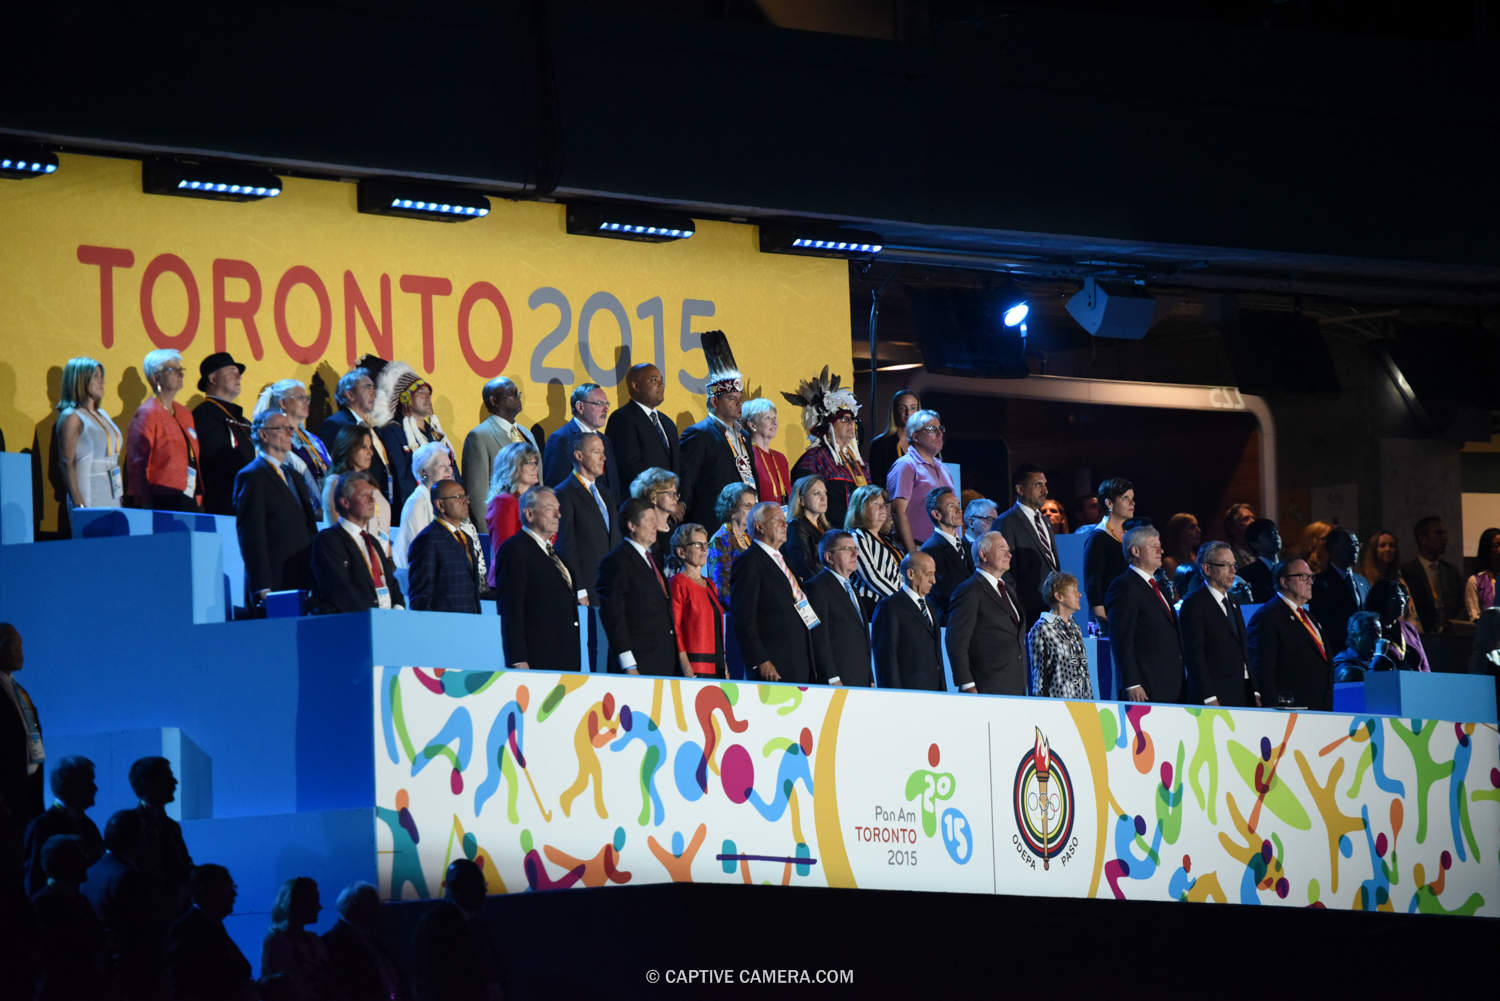 CANADA'S ELITE AT TORONTO 2015 PAN AM GAMES